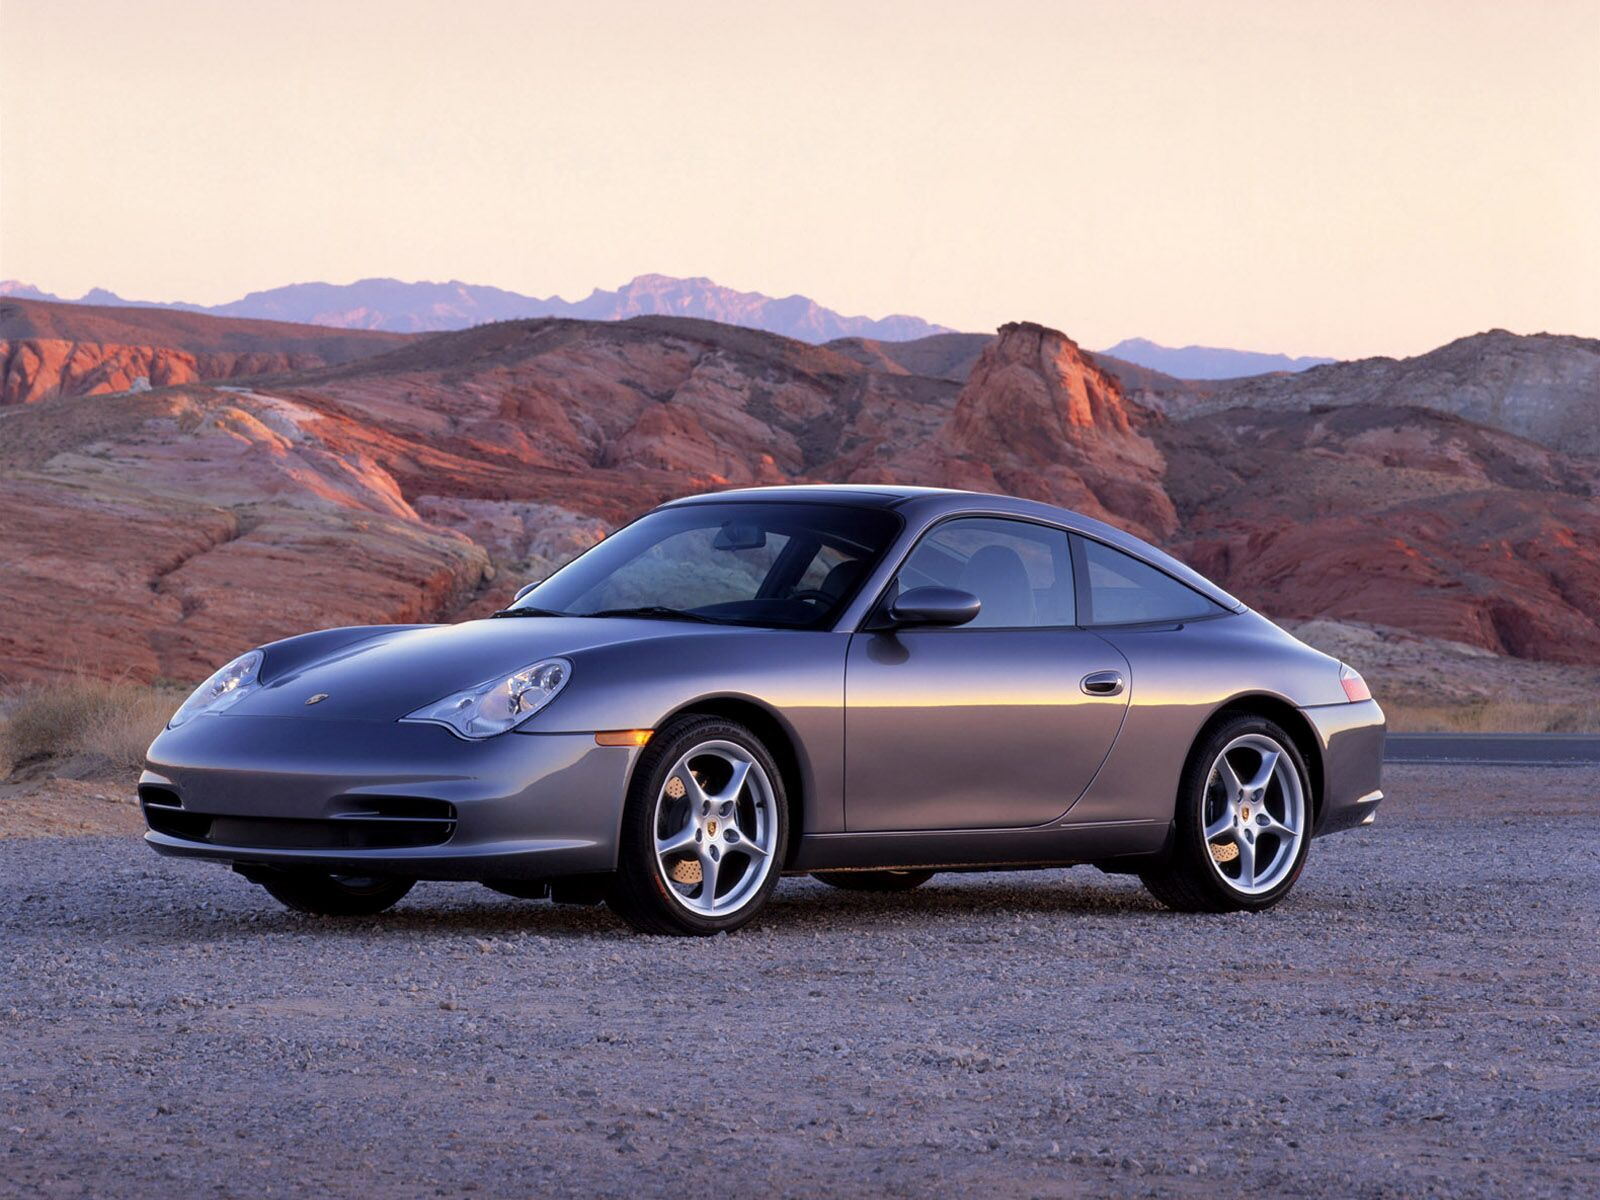 Porsche 996 911 Targa photo 8479